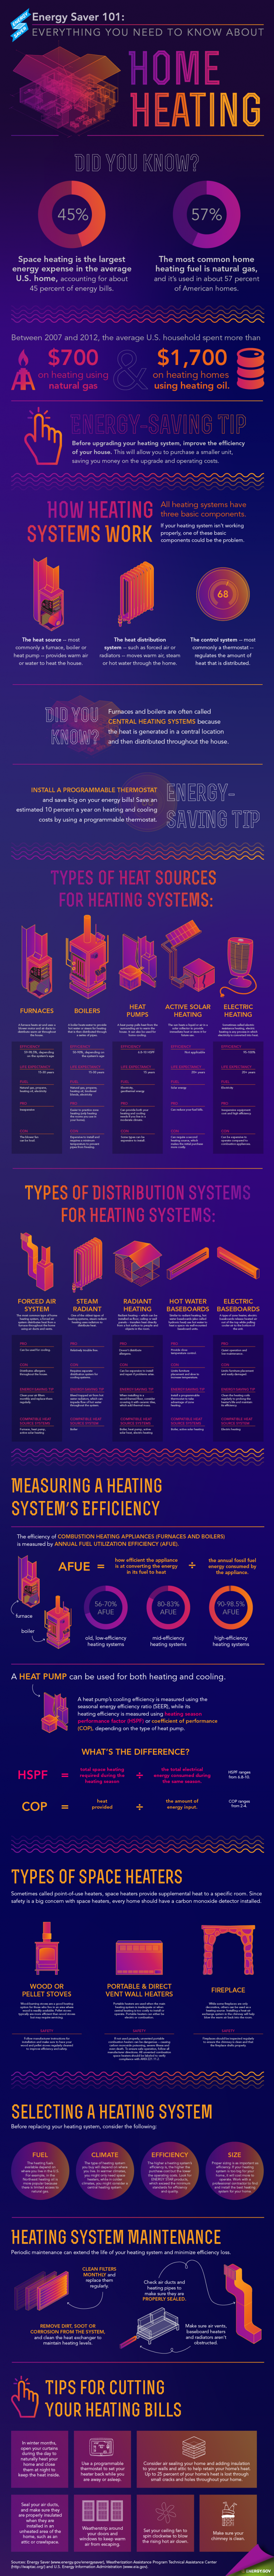 home_heating_infographic